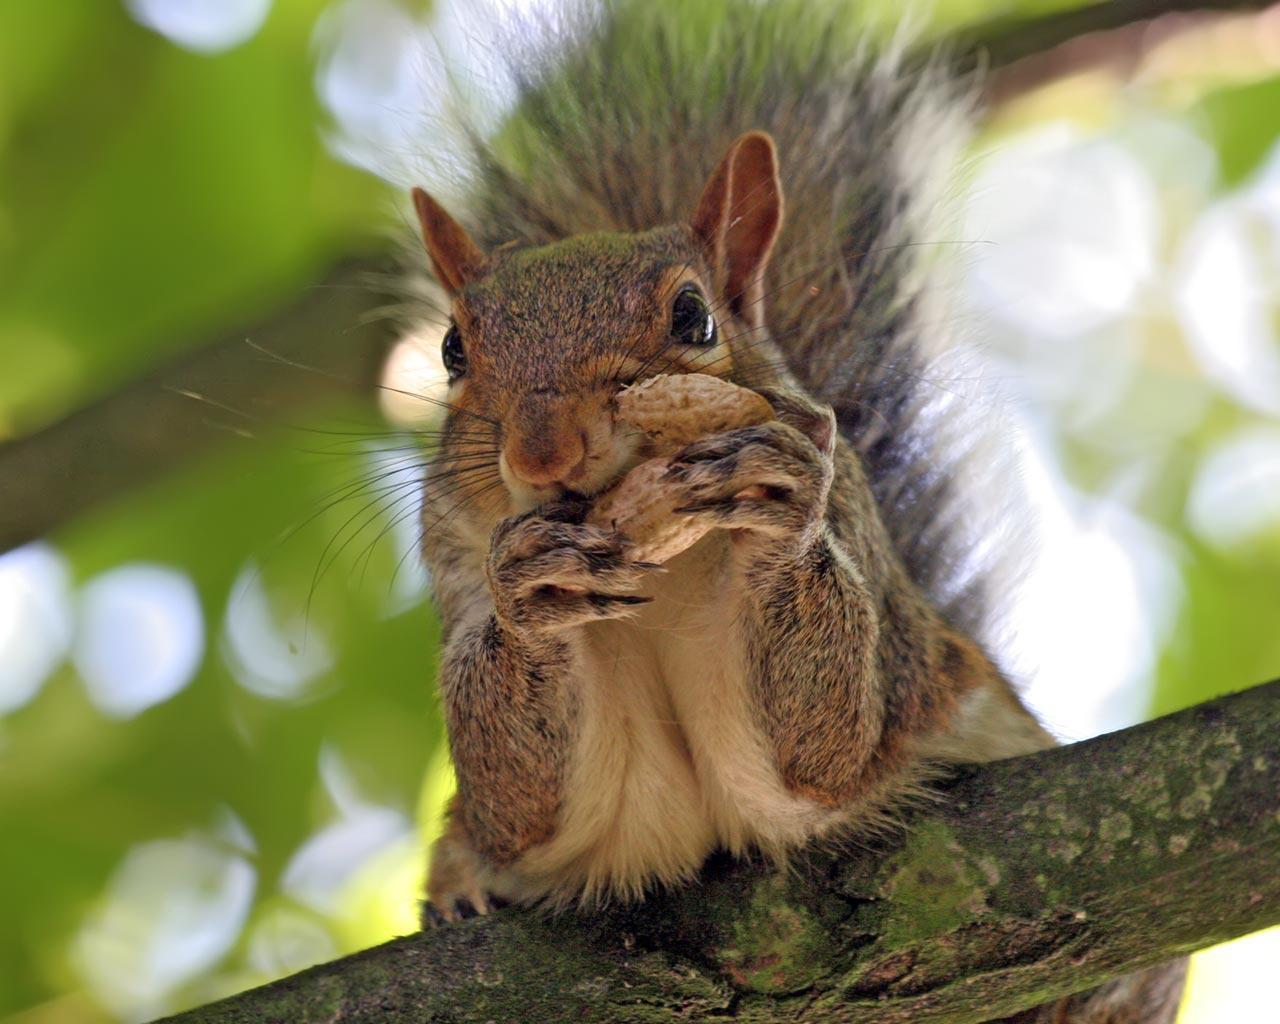 Squirrel Peanut wallpaper - Animal Backgrounds